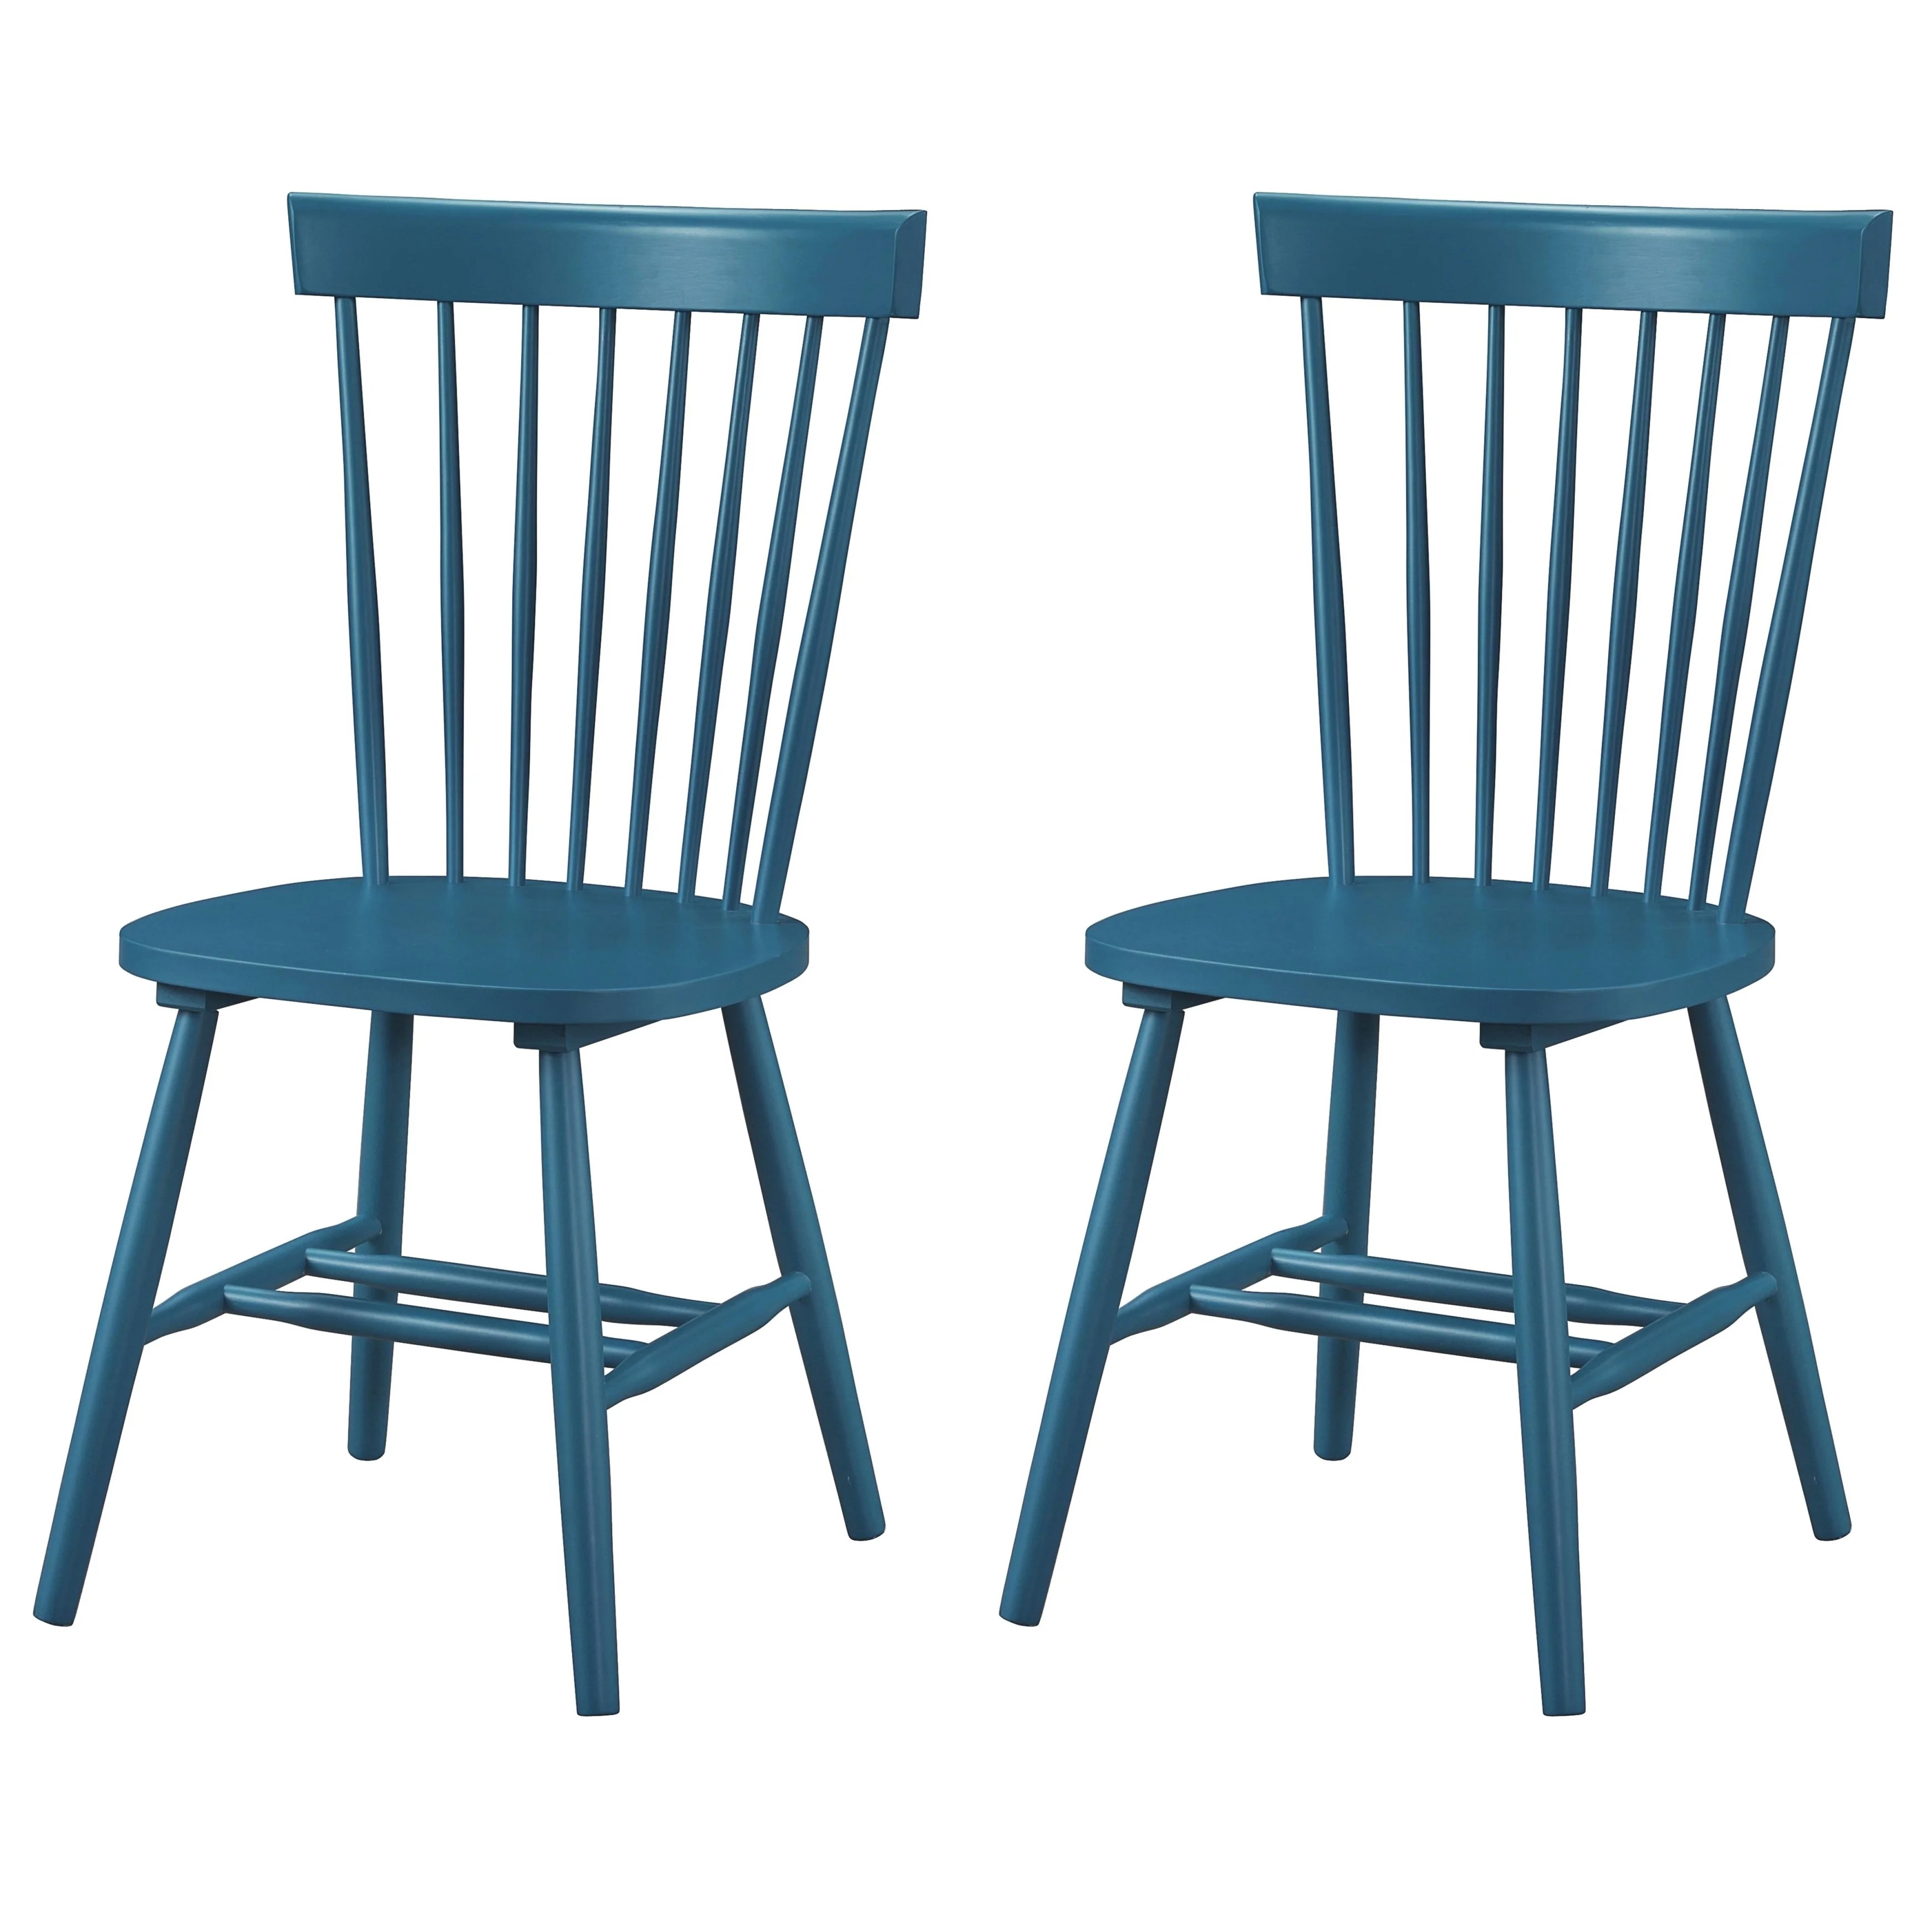 Dunner Danish Design Spindle Back Blue Teal Dining Chairs Set Of 2 Overstock 10650182